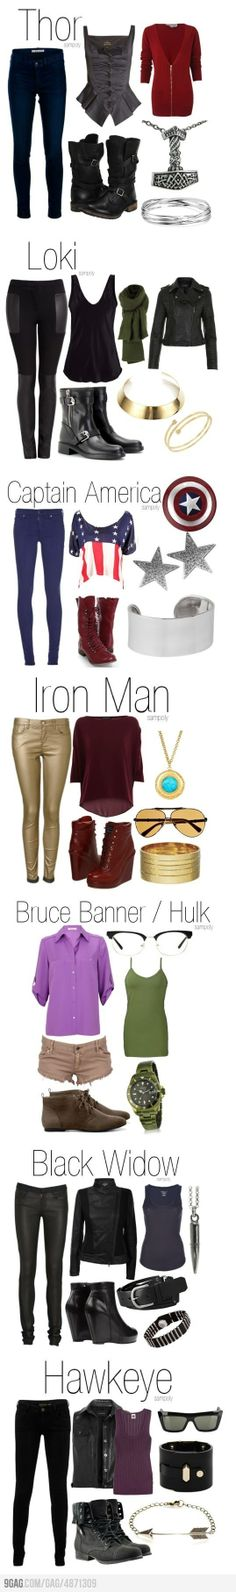 Avengers-inspired outfits! I call dibs on Hulk. Mostly because I already have that outfit.